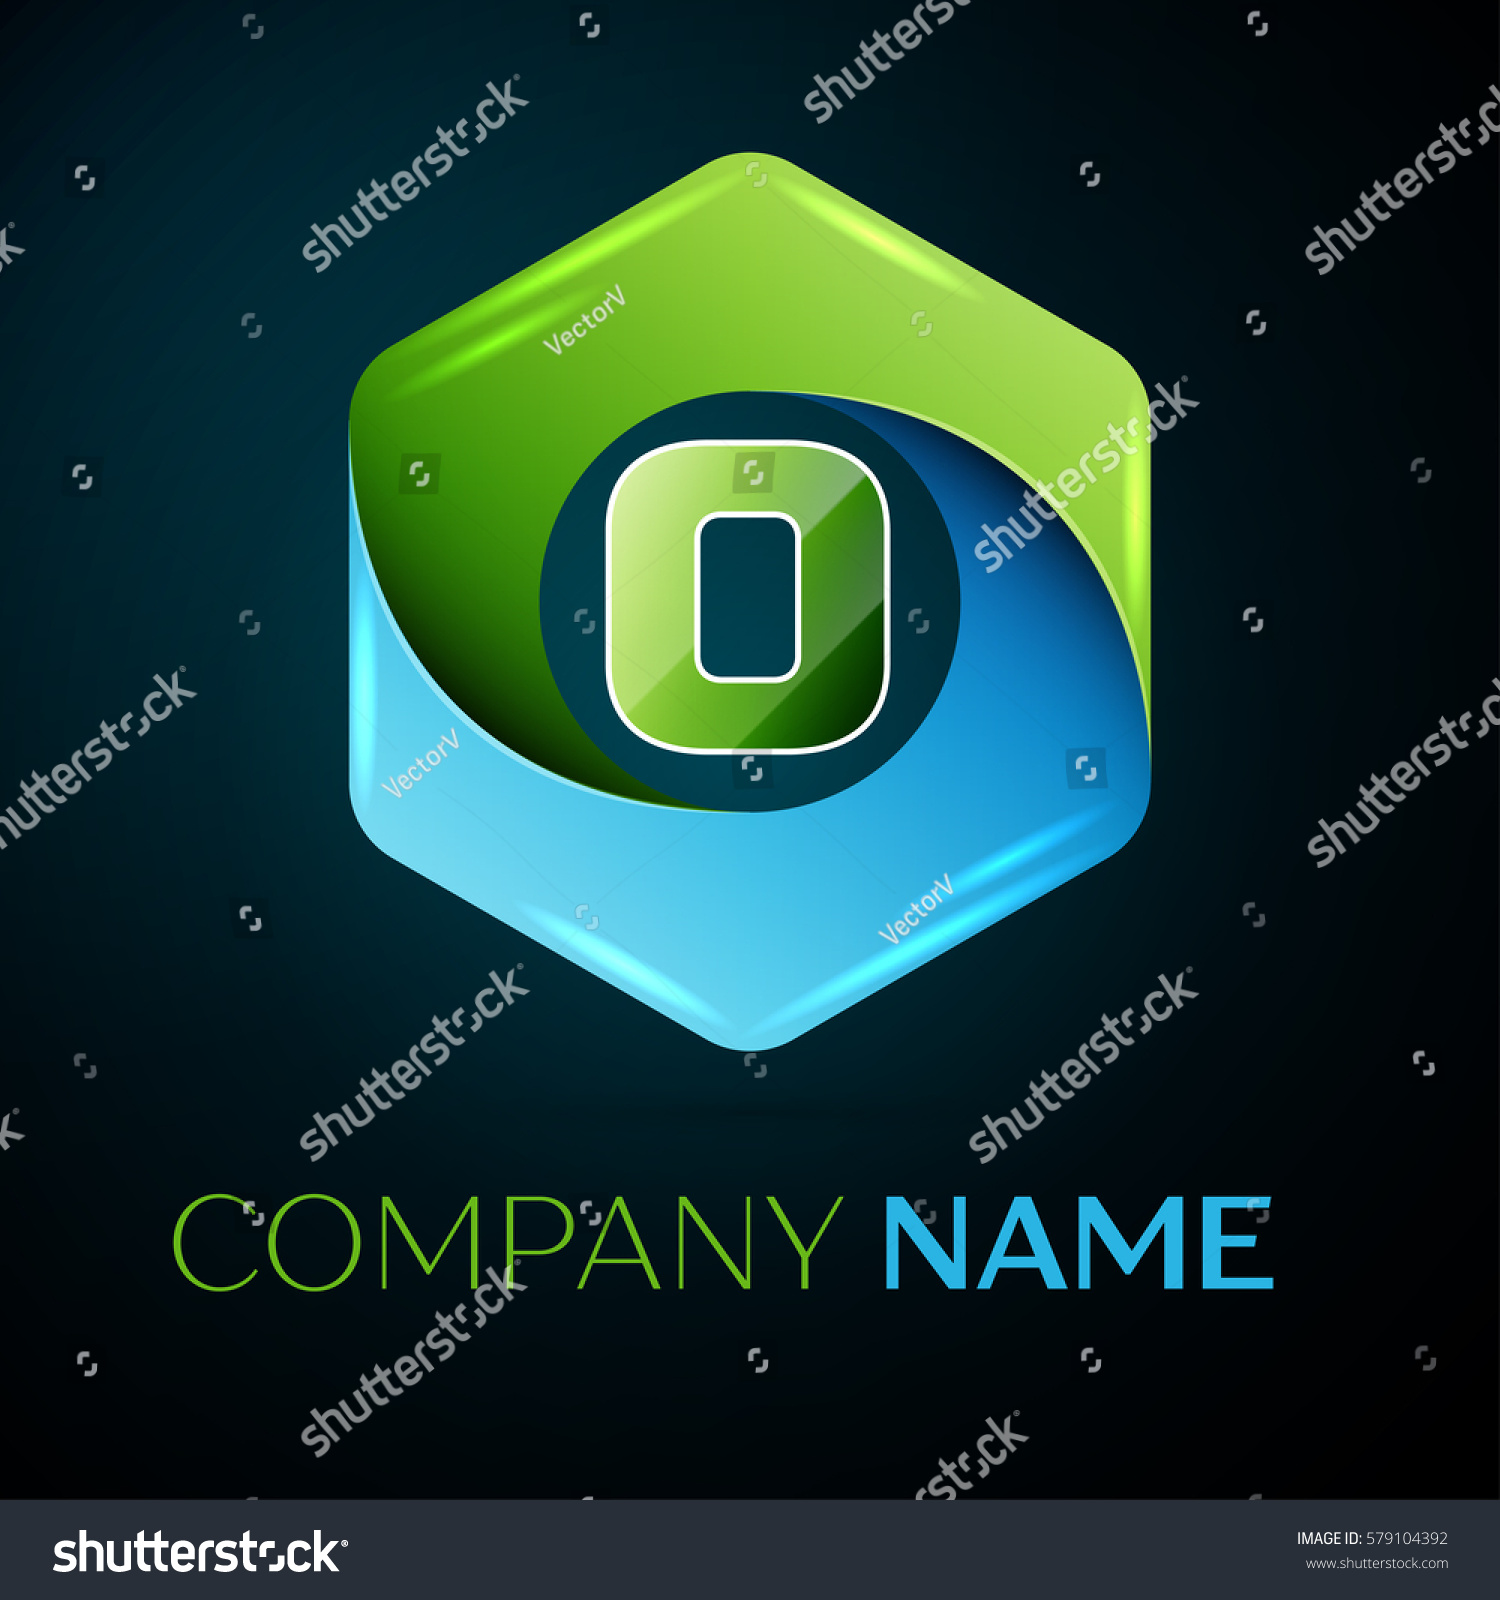 Letter o logo symbol colorful hexagonal stock illustration letter o logo symbol in the colorful hexagonal on black background template for your design buycottarizona